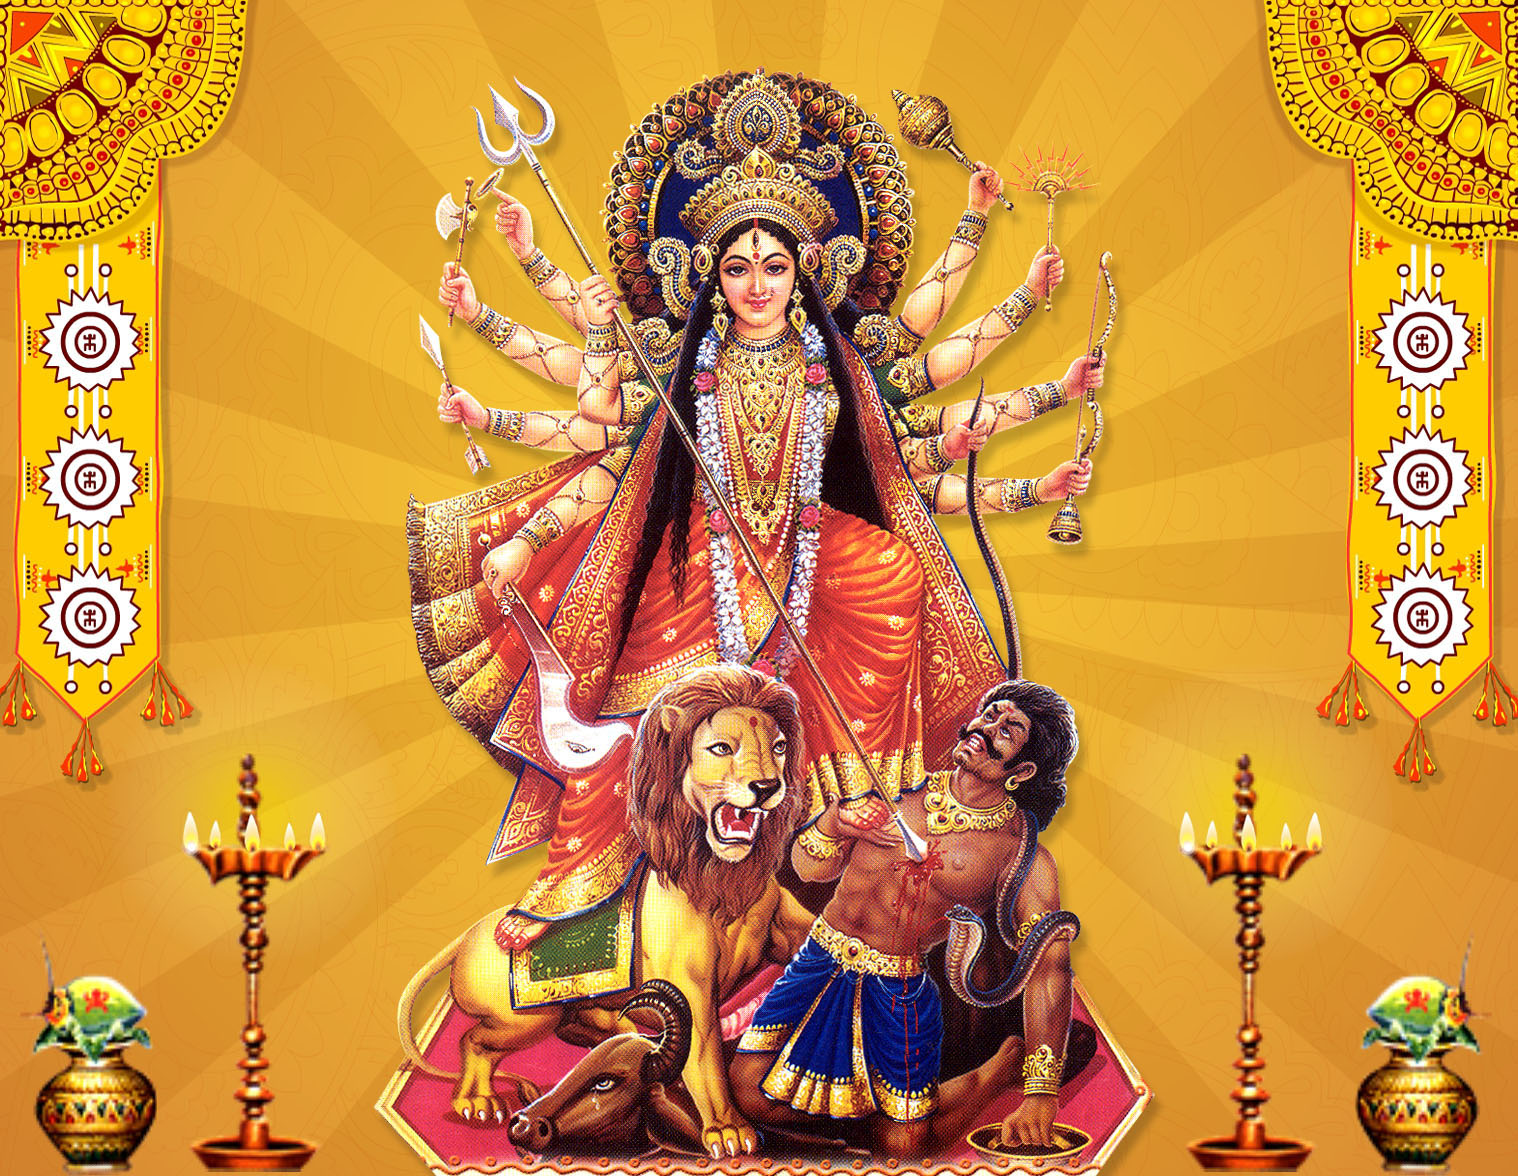 Hd Wallpapers Durga Mata